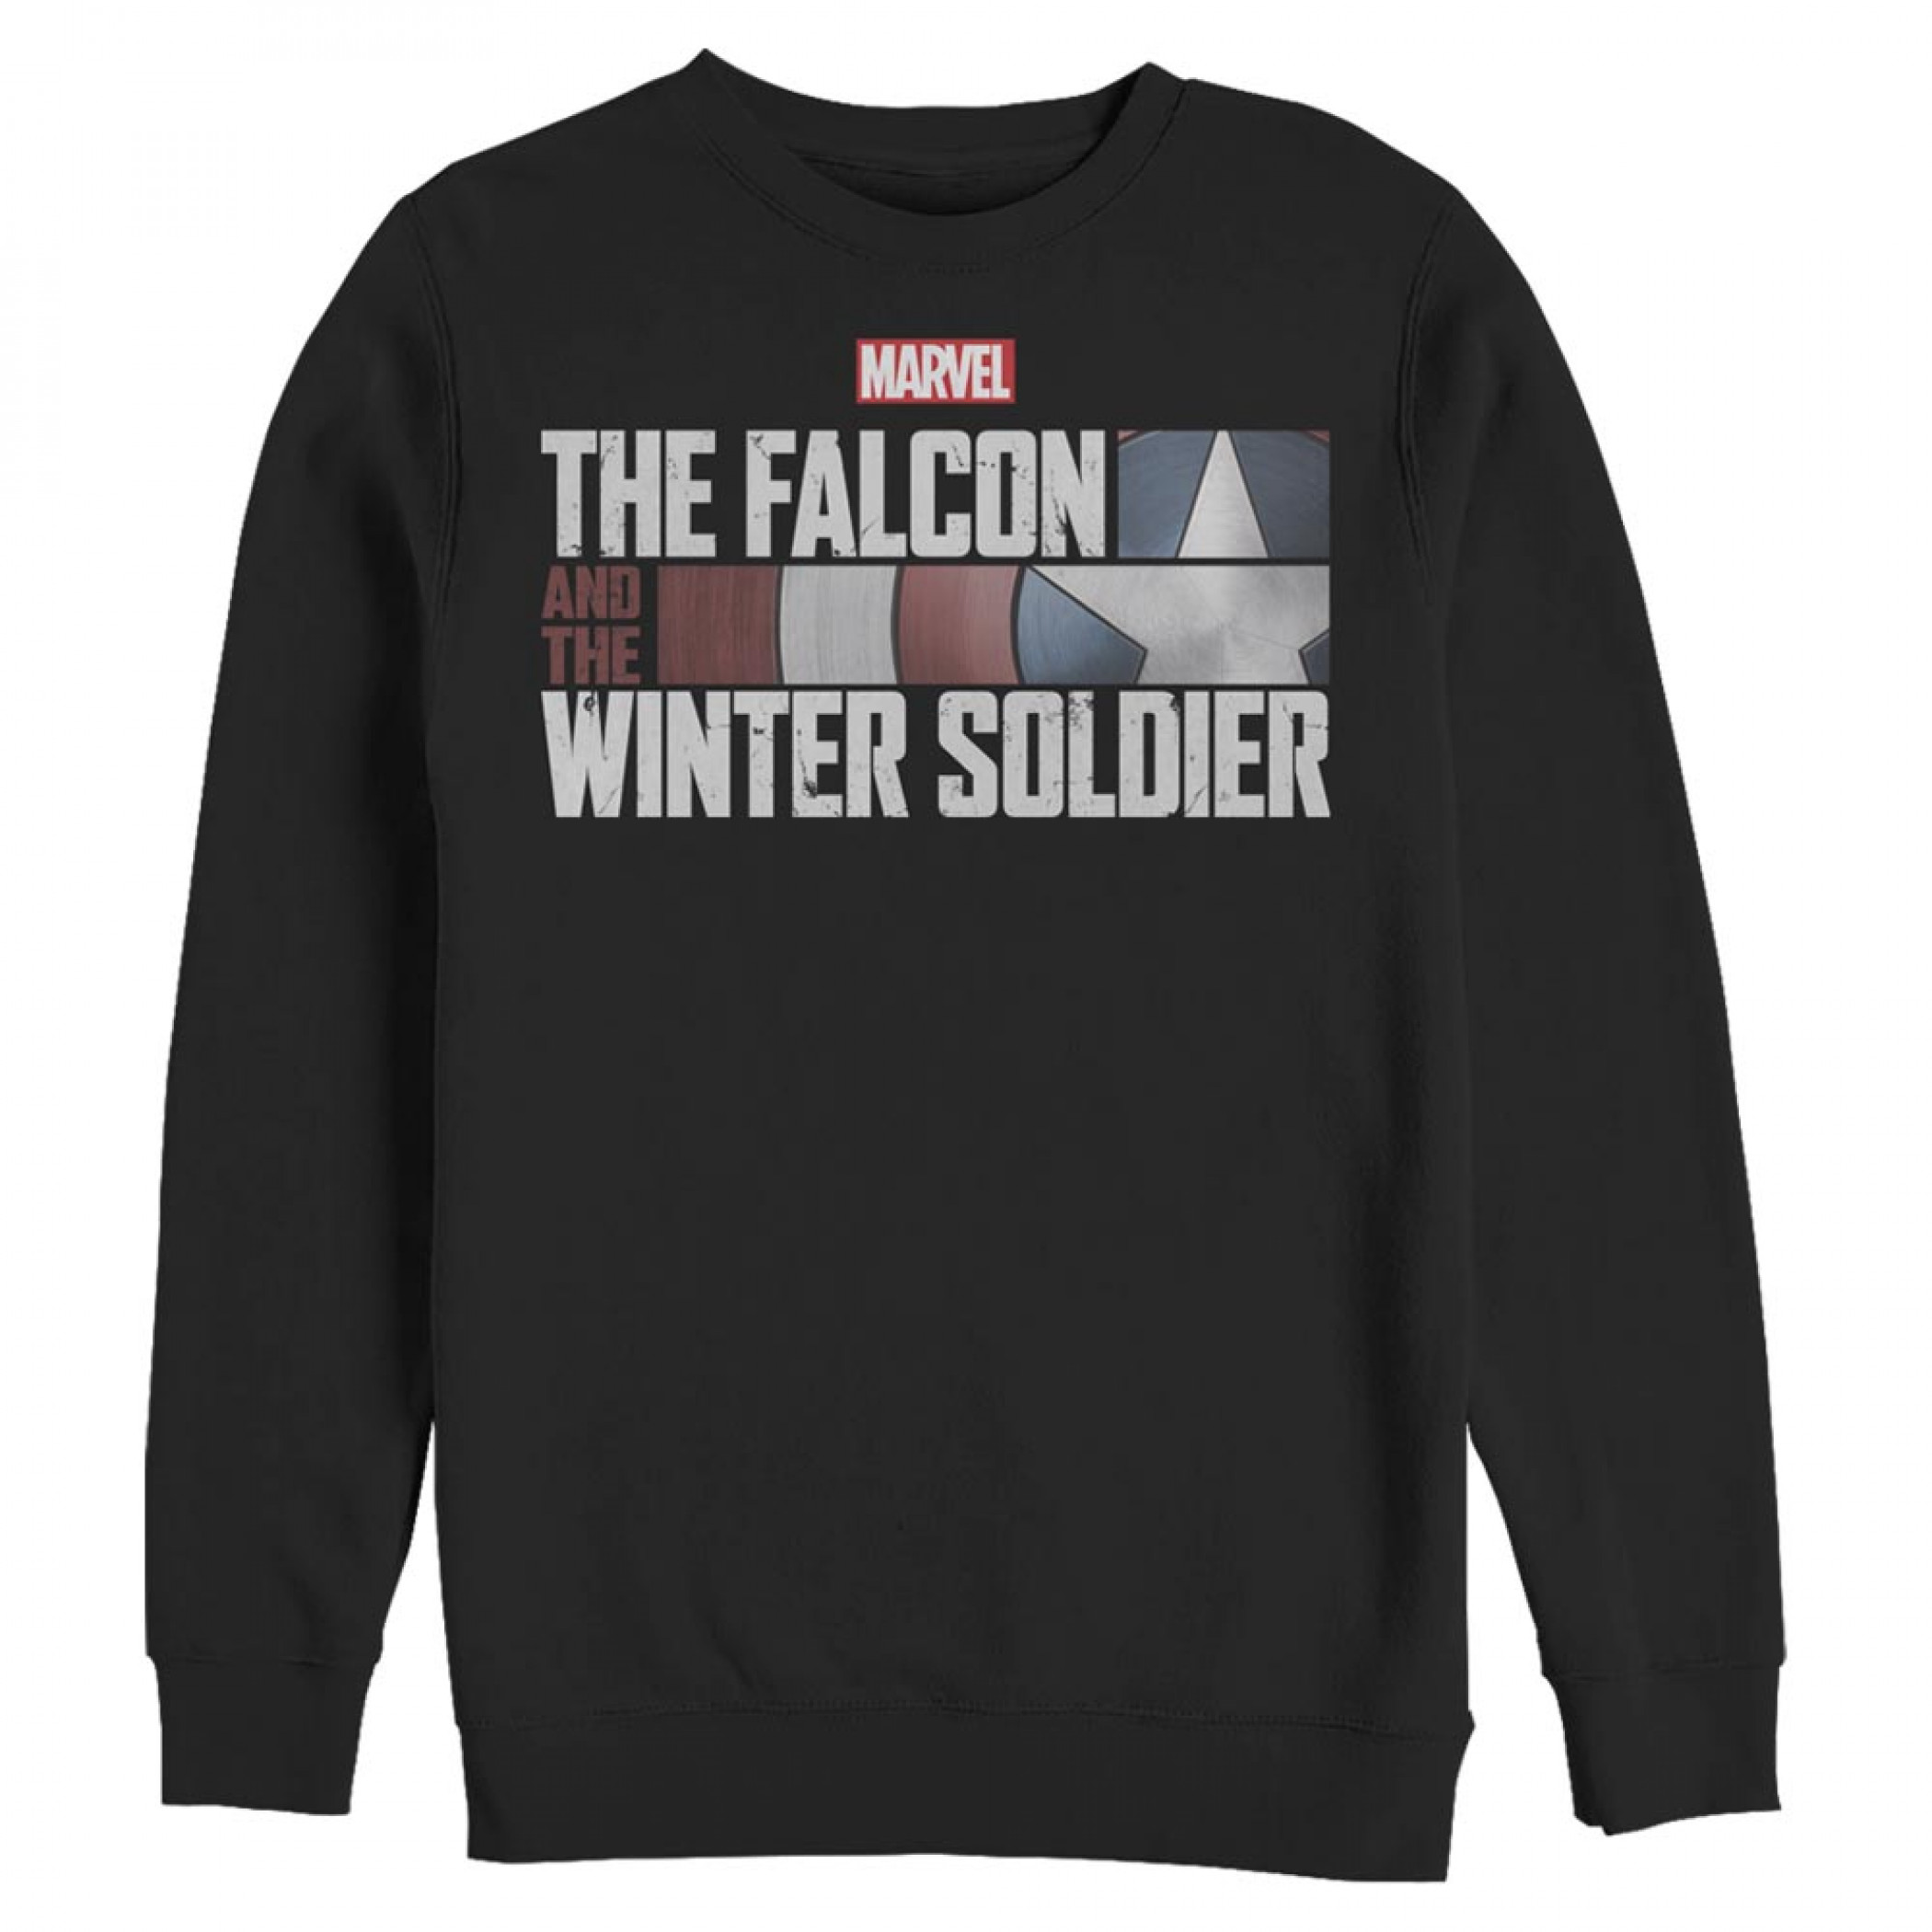 The Falcon and the Winter Soldier Crewneck Sweatshirt